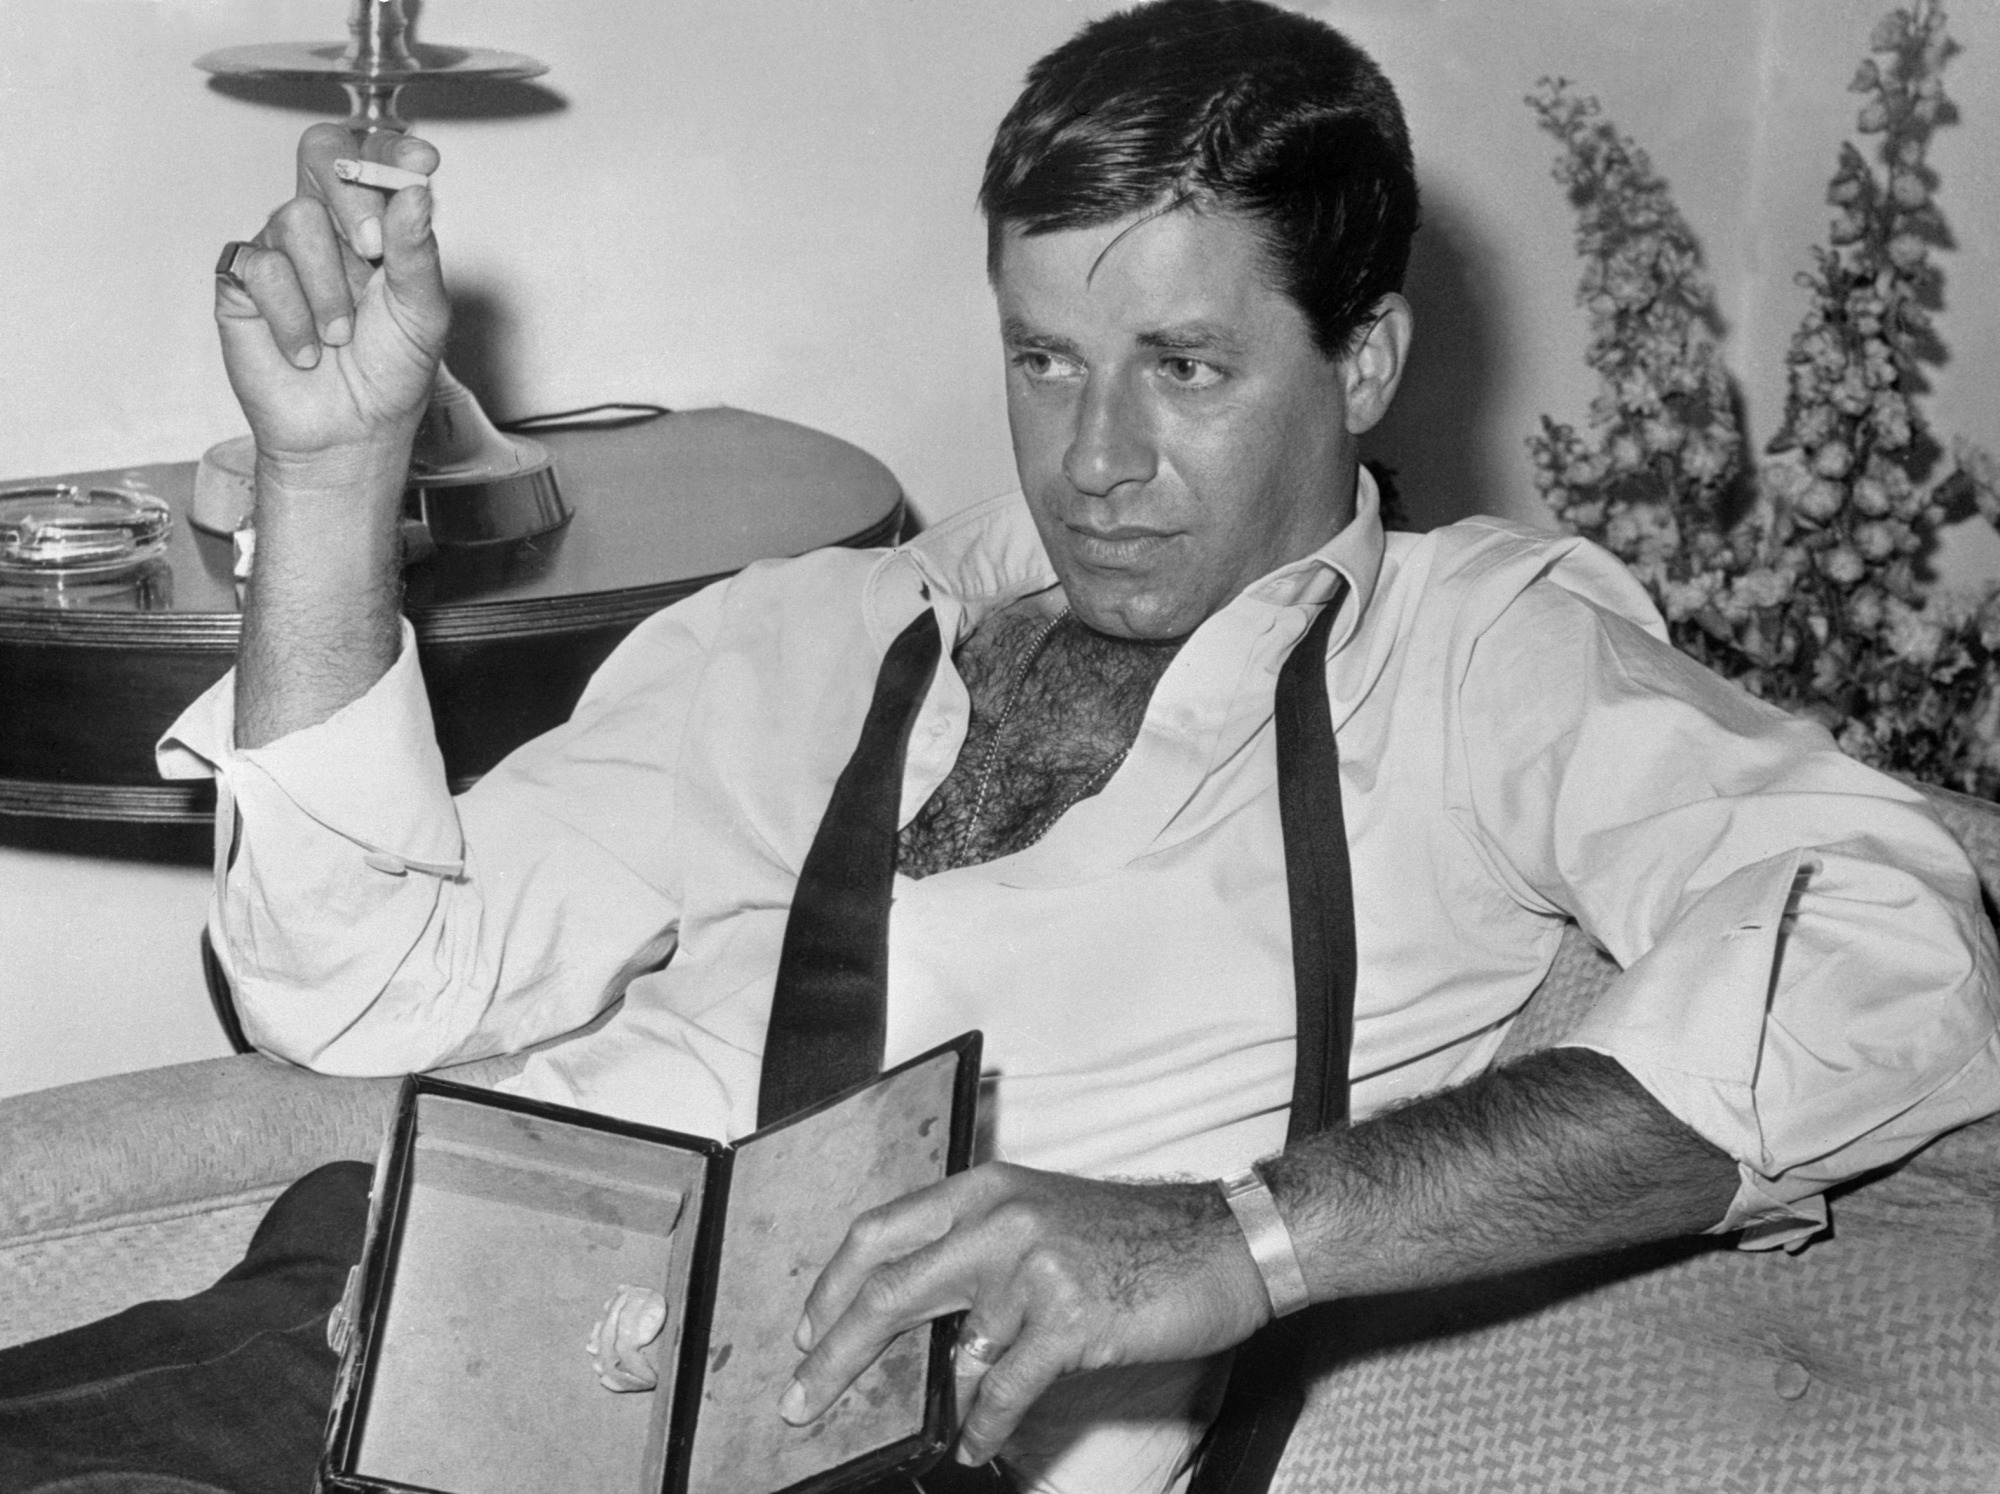 Jerry Lewis sitting on a chair